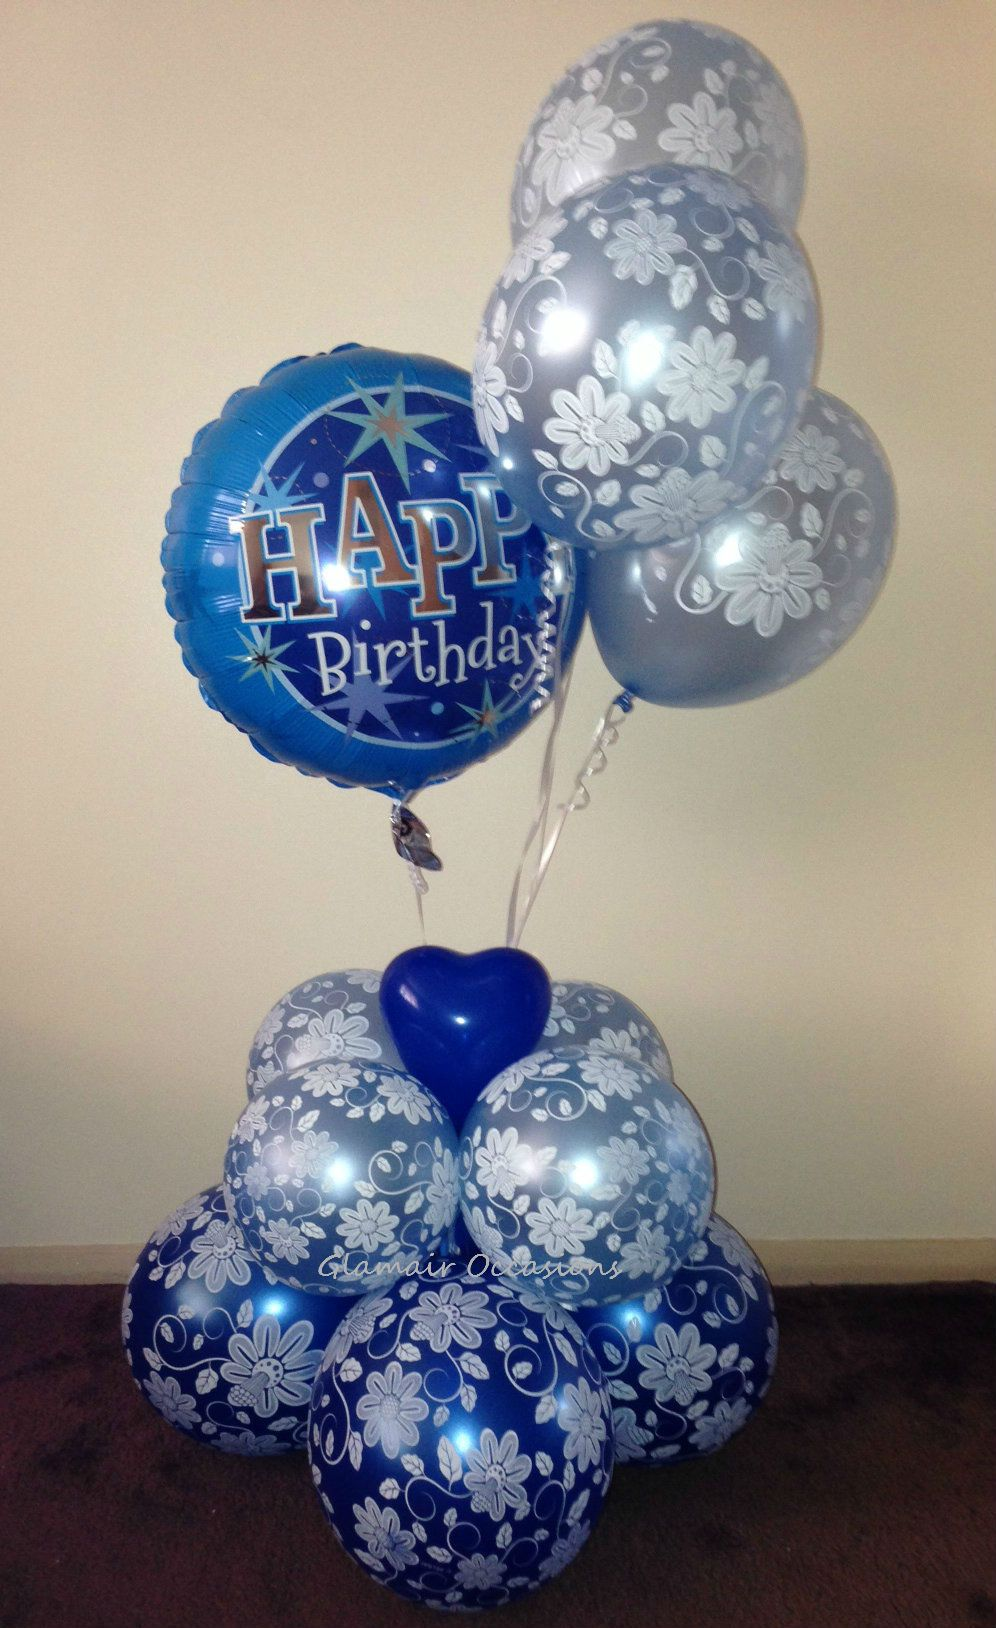 Happy Birthday Balloon Bouquet Blue Floral Balloons